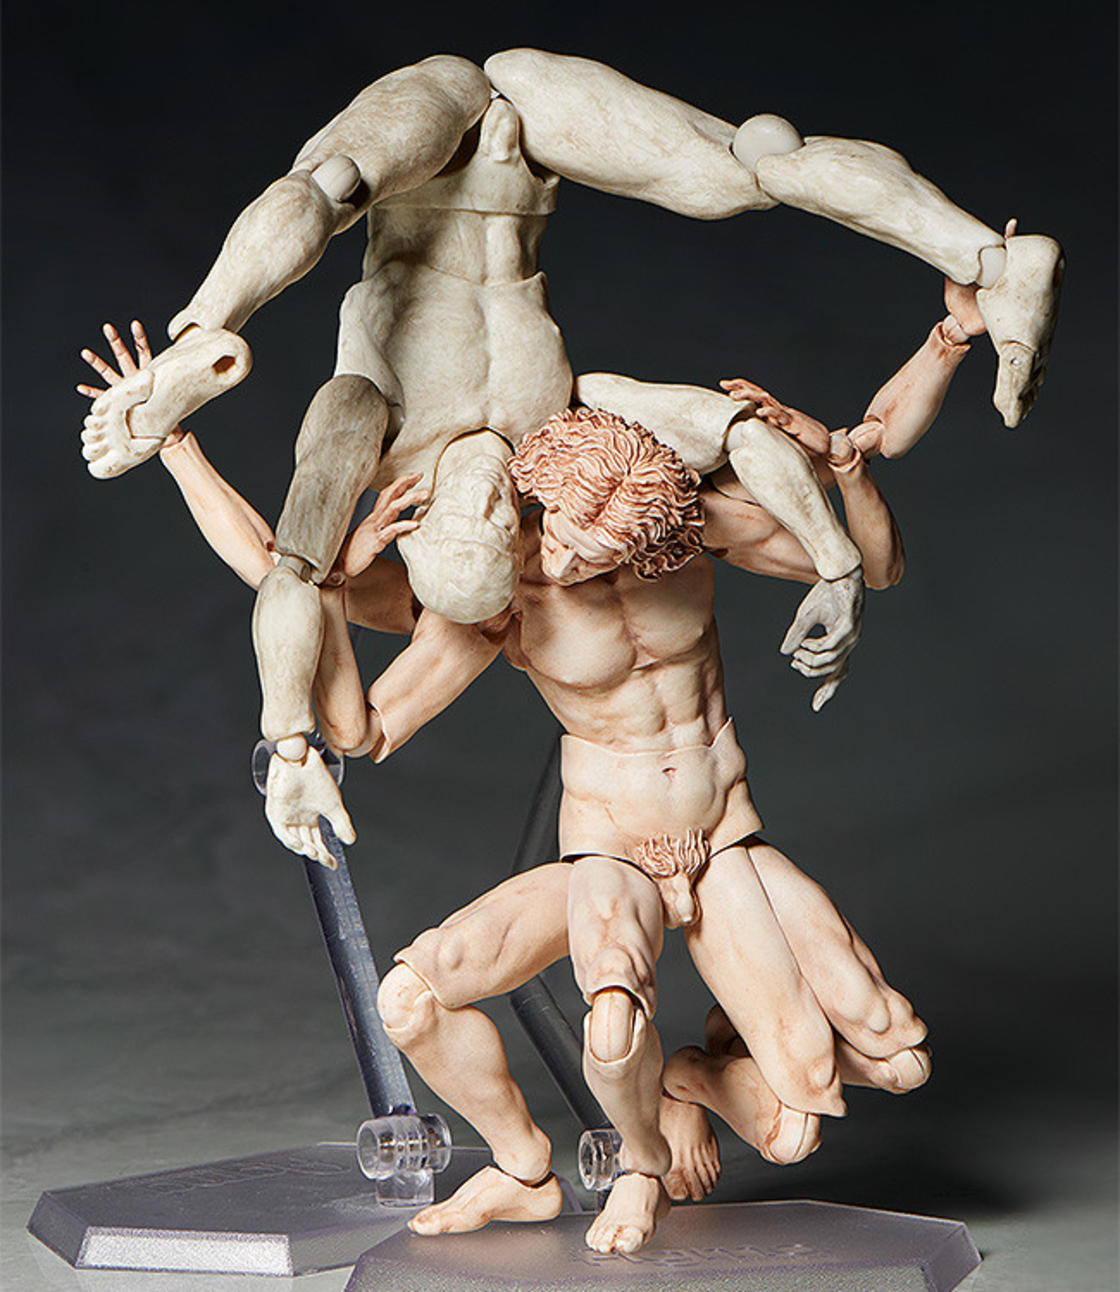 Vitruvian-Man-Action-Figure-1.jpg